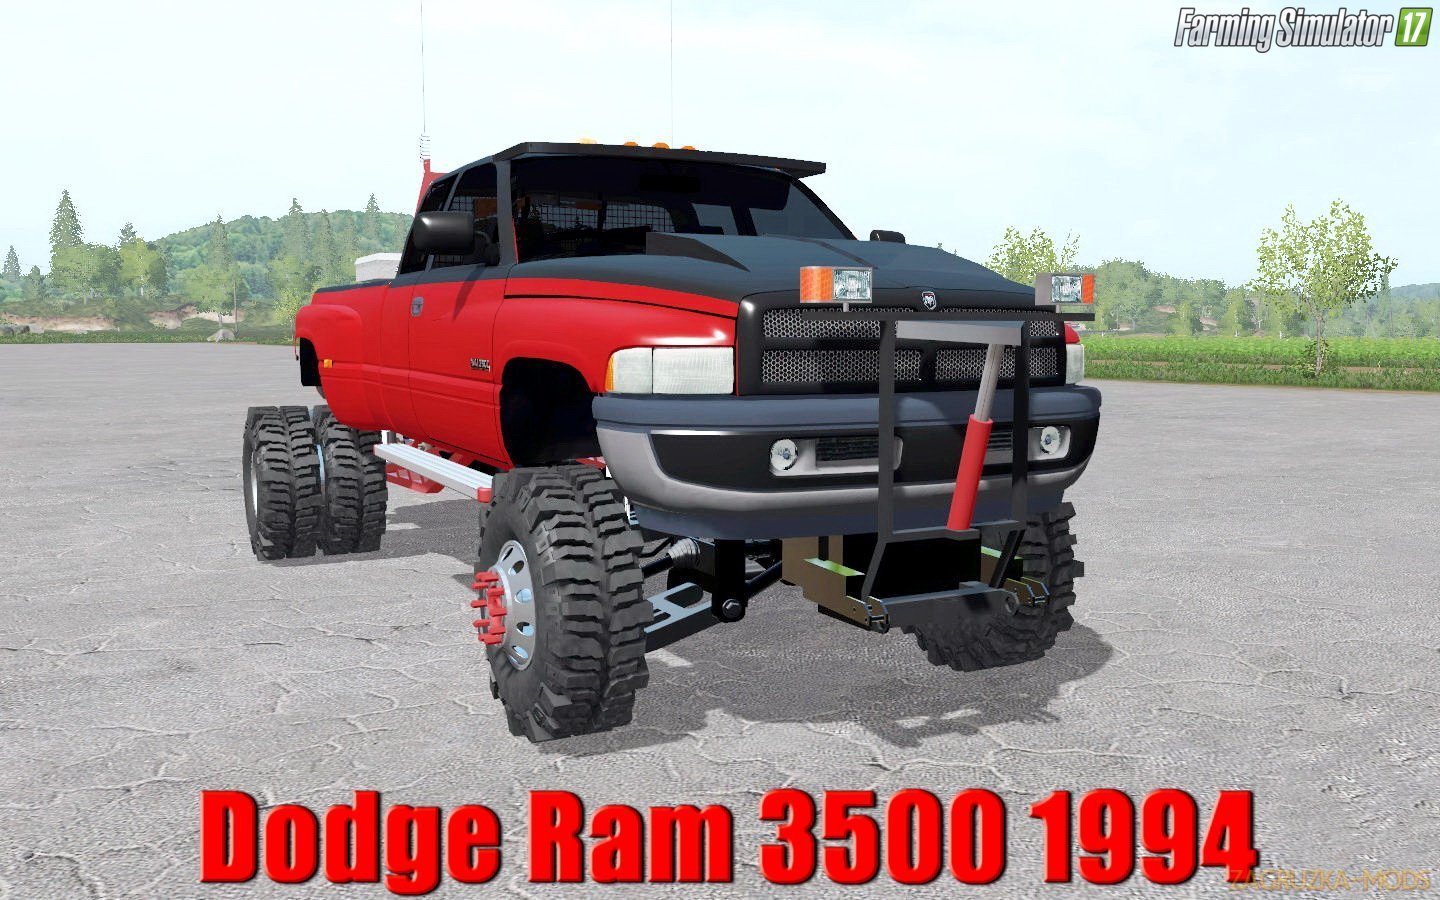 Dodge Ram 3500 1994 v1.0 for FS17